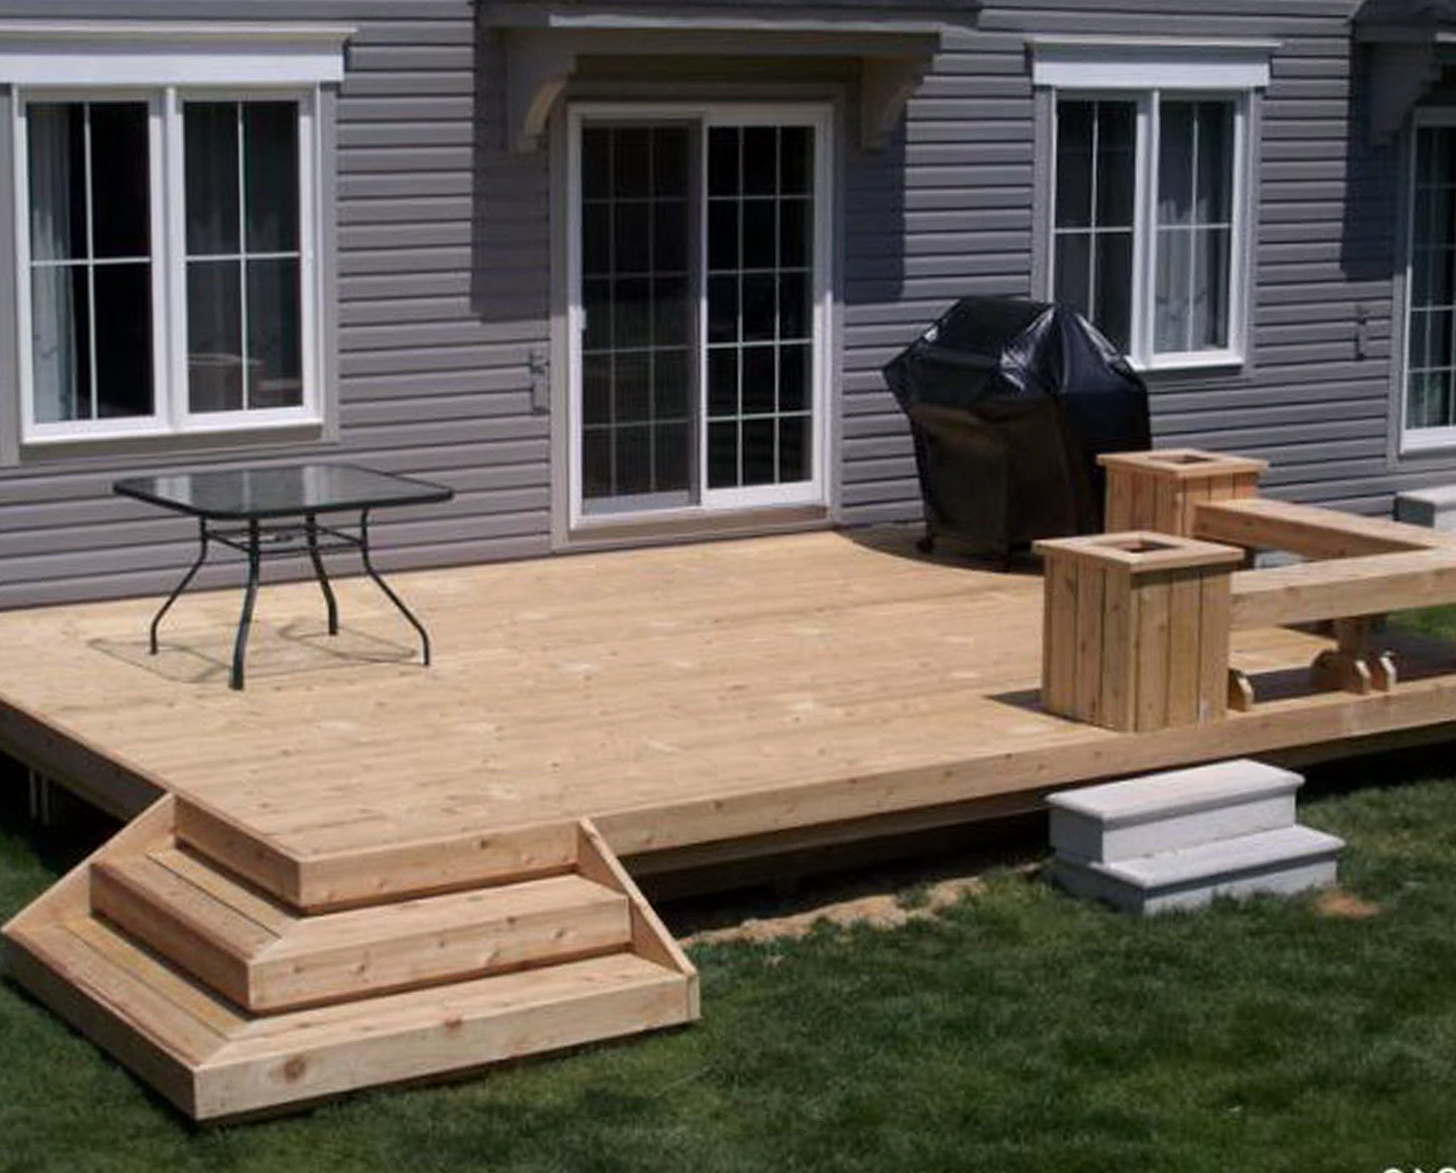 Design a deck online tool home design ideas for Online deck designer tool